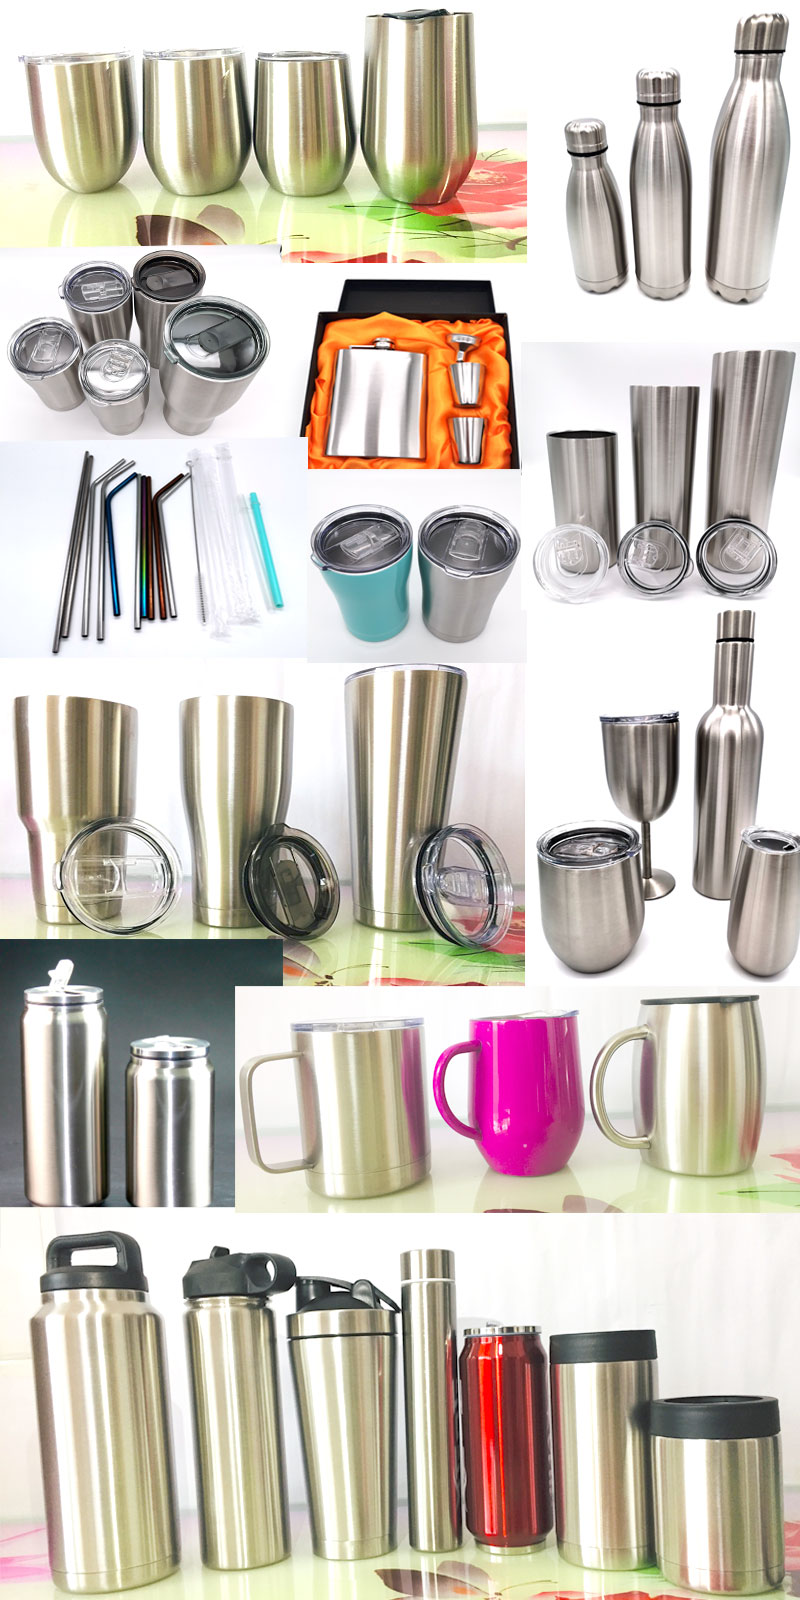 10oz stainless steel mark cup